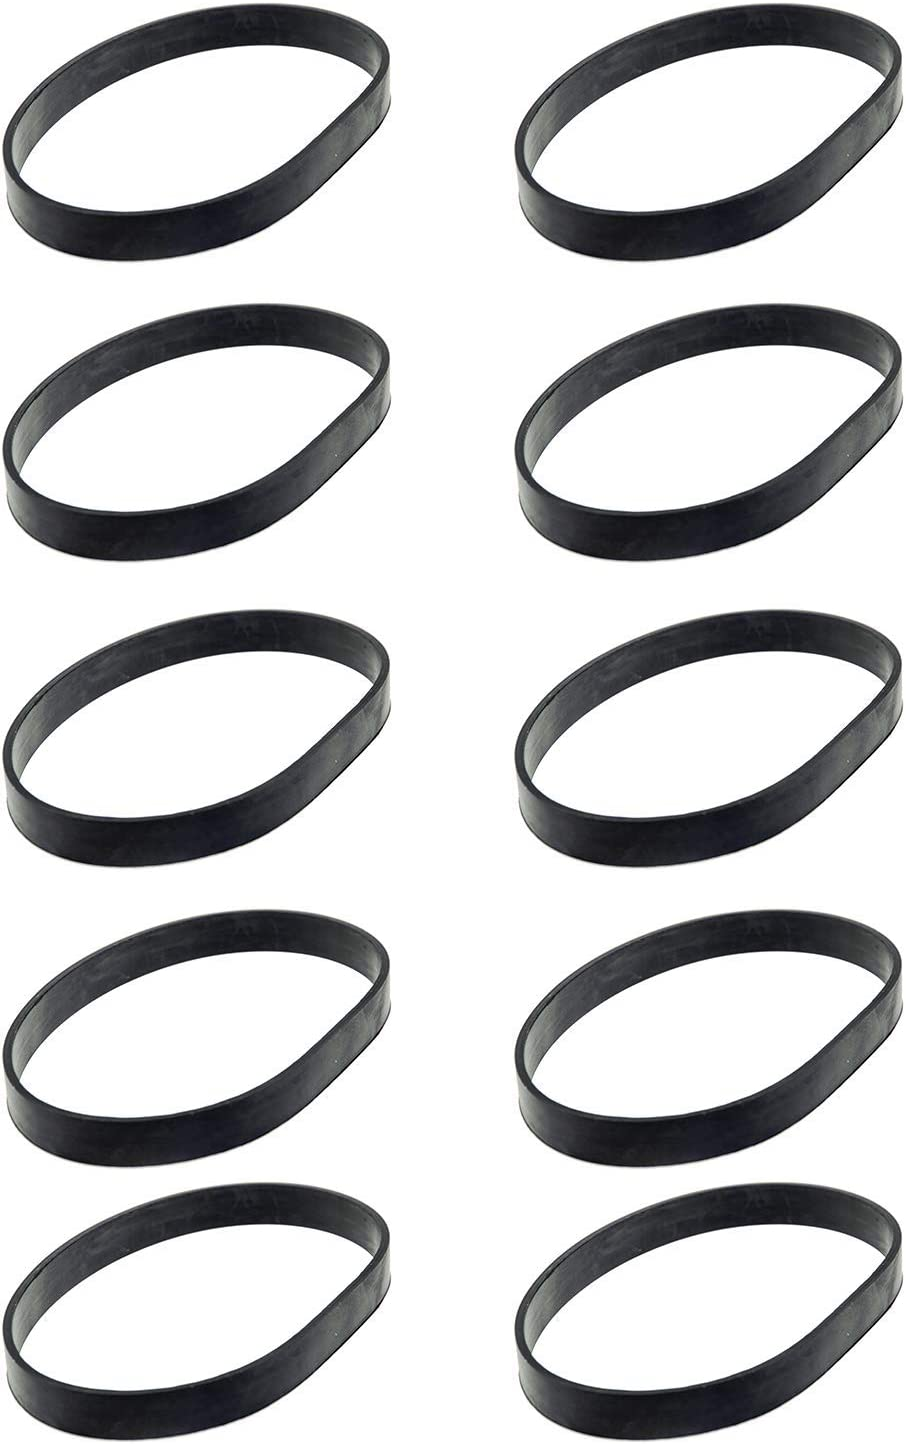 BIHARNT 10 Pack Replacement Belt Compatible with Bissell PowerForce Compact Lightweight Upright Vacuum Cleaner 1520 2112 Series. Compare to Part #1604896/160-4896